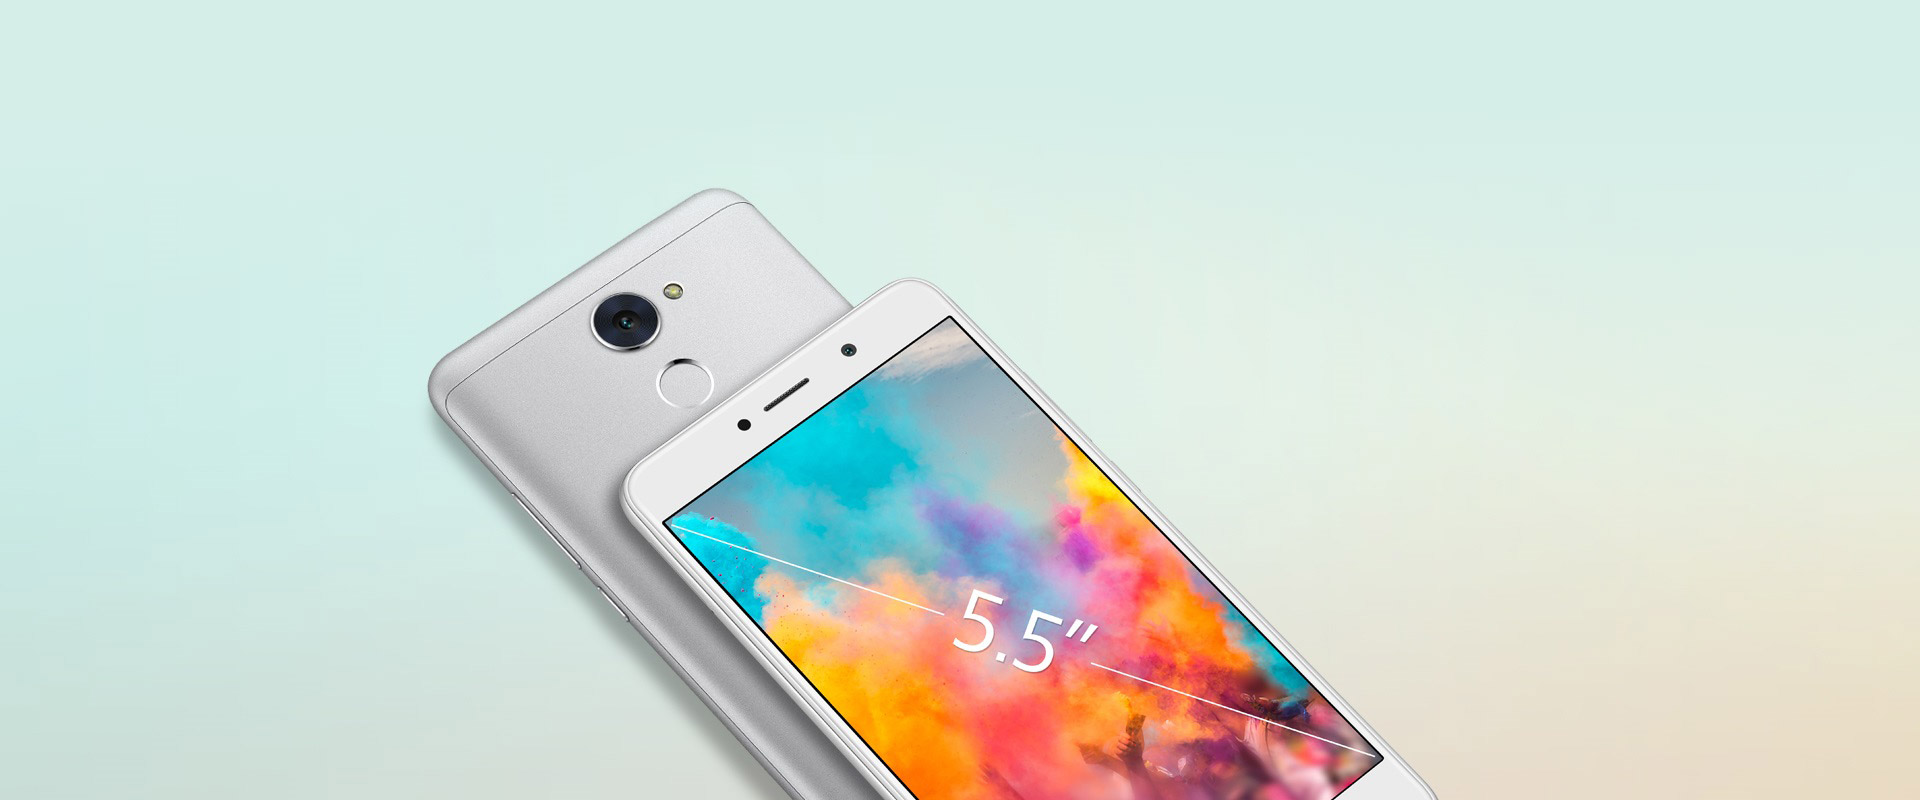 HUAWEI Y7 Prime - Cellphone | HUAWEI Philippines